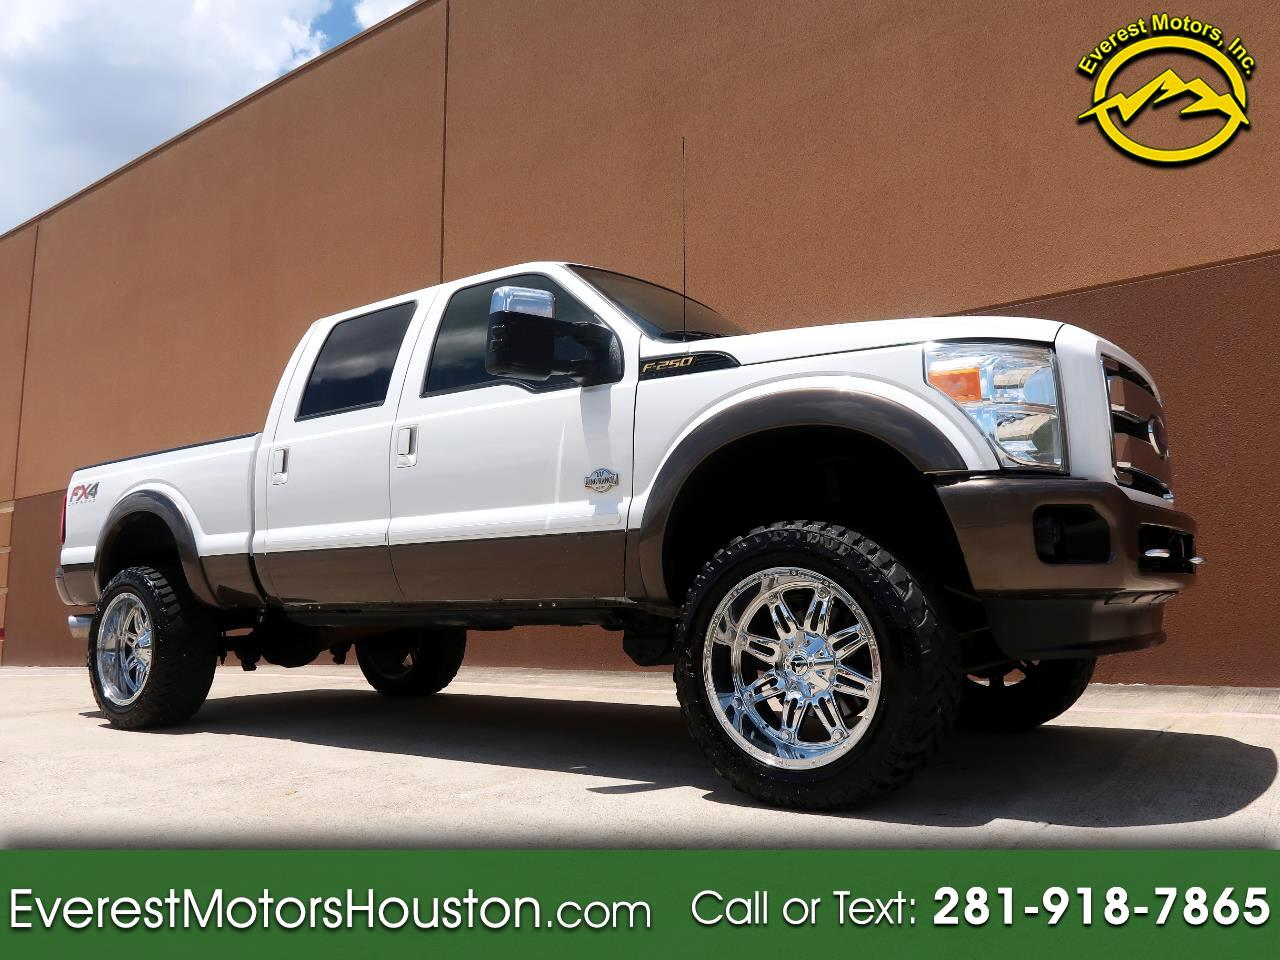 2015 Ford F-250 SD KING RANCH CREW CAB SHORT BED 4WD LOADED